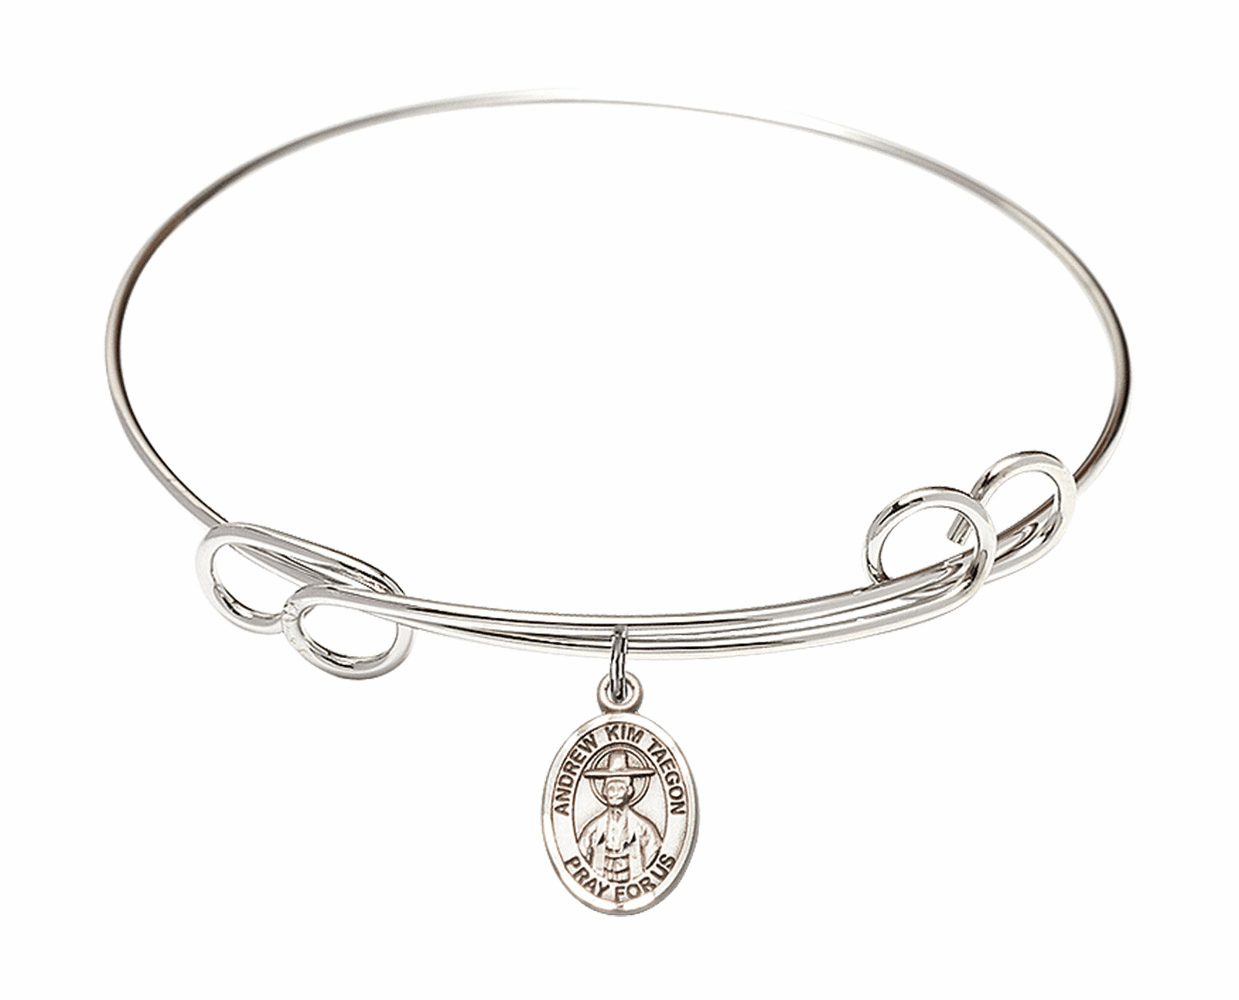 Round Loop St Andrew Kim Taegon Bangle Charm Bracelet by Bliss